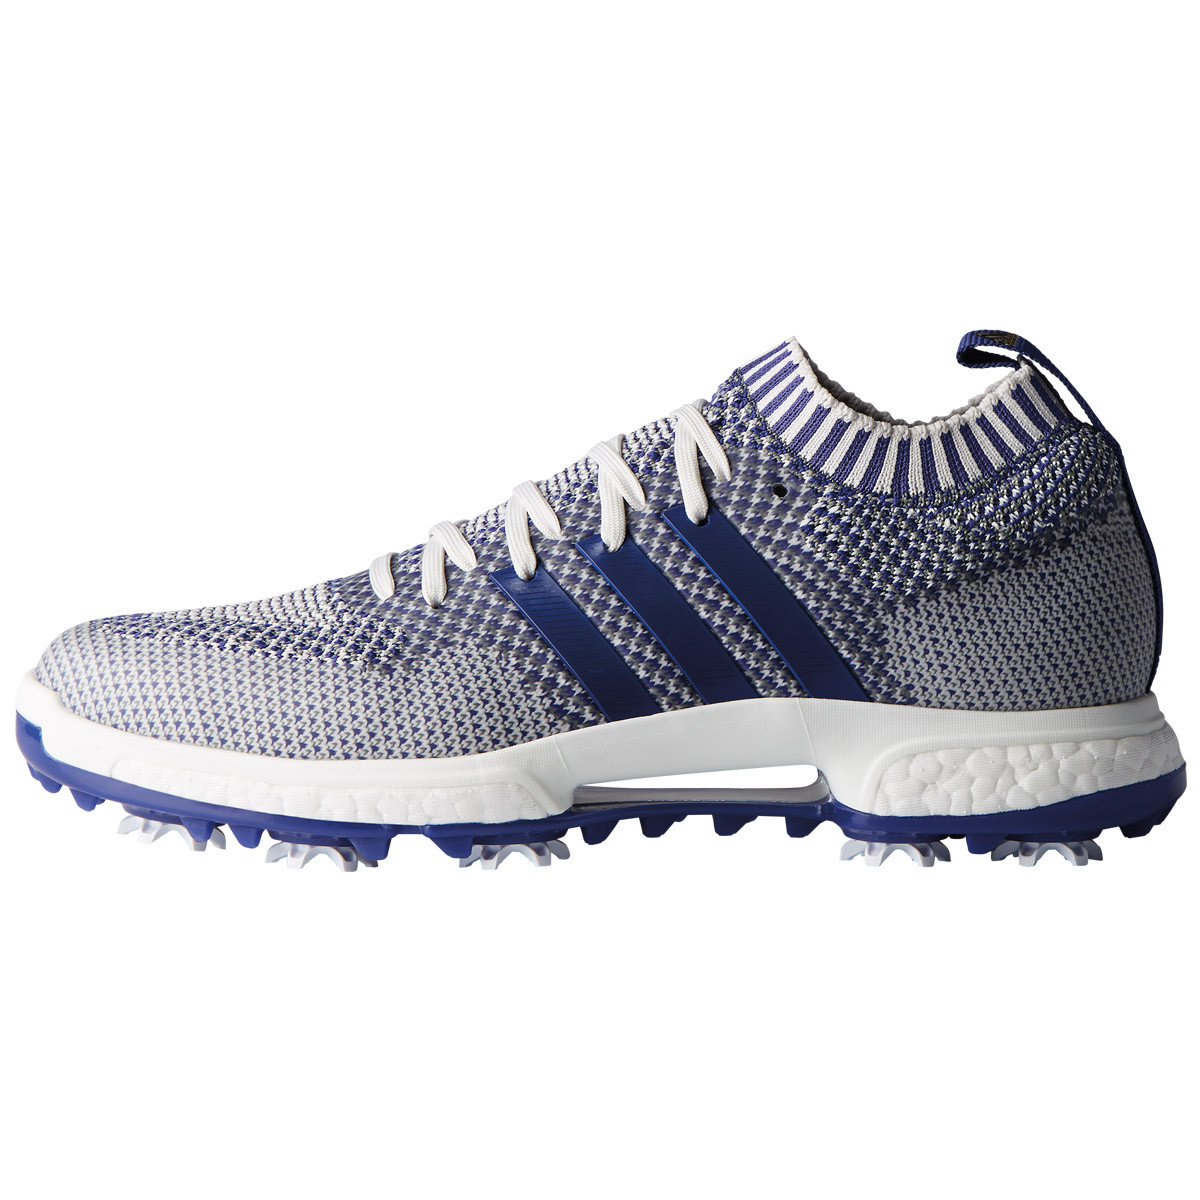 4e97f7b0663 adidas Golf Mens Tour 360 Knit Golf Shoes